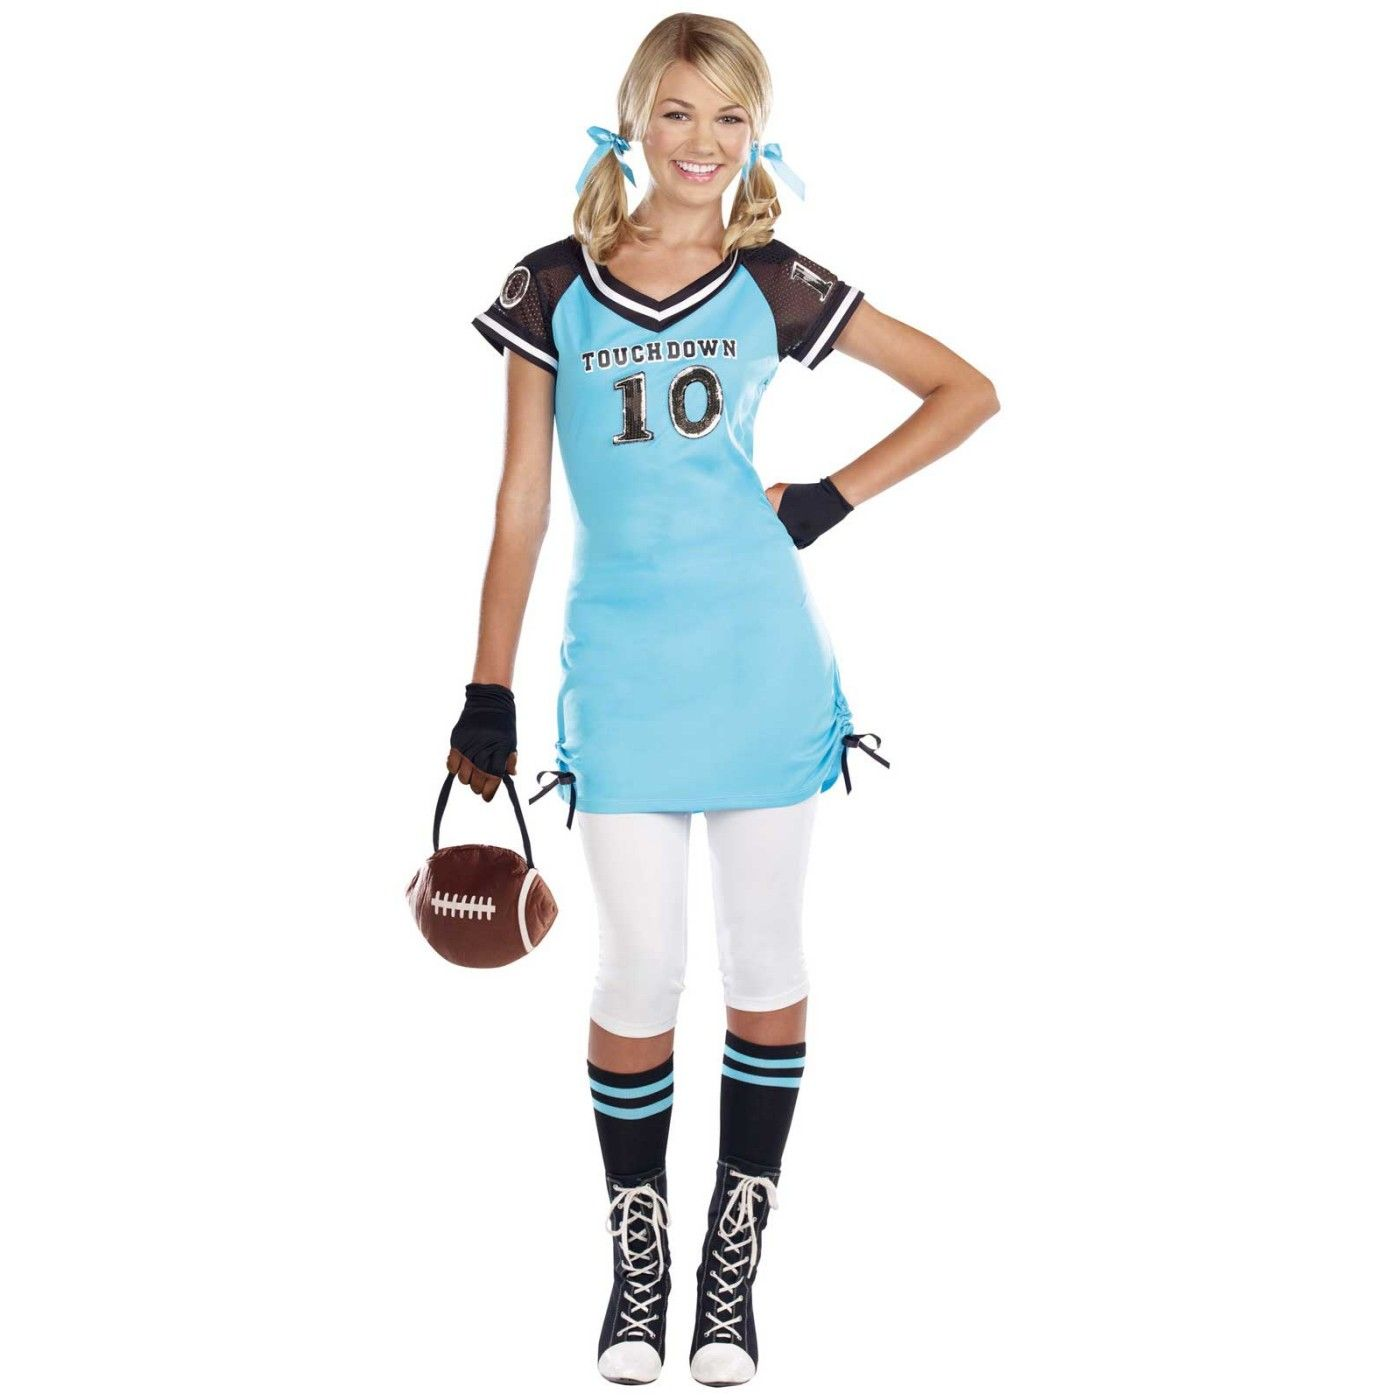 halloween costumes for teenage girls | Football Touchdown Cutie ...